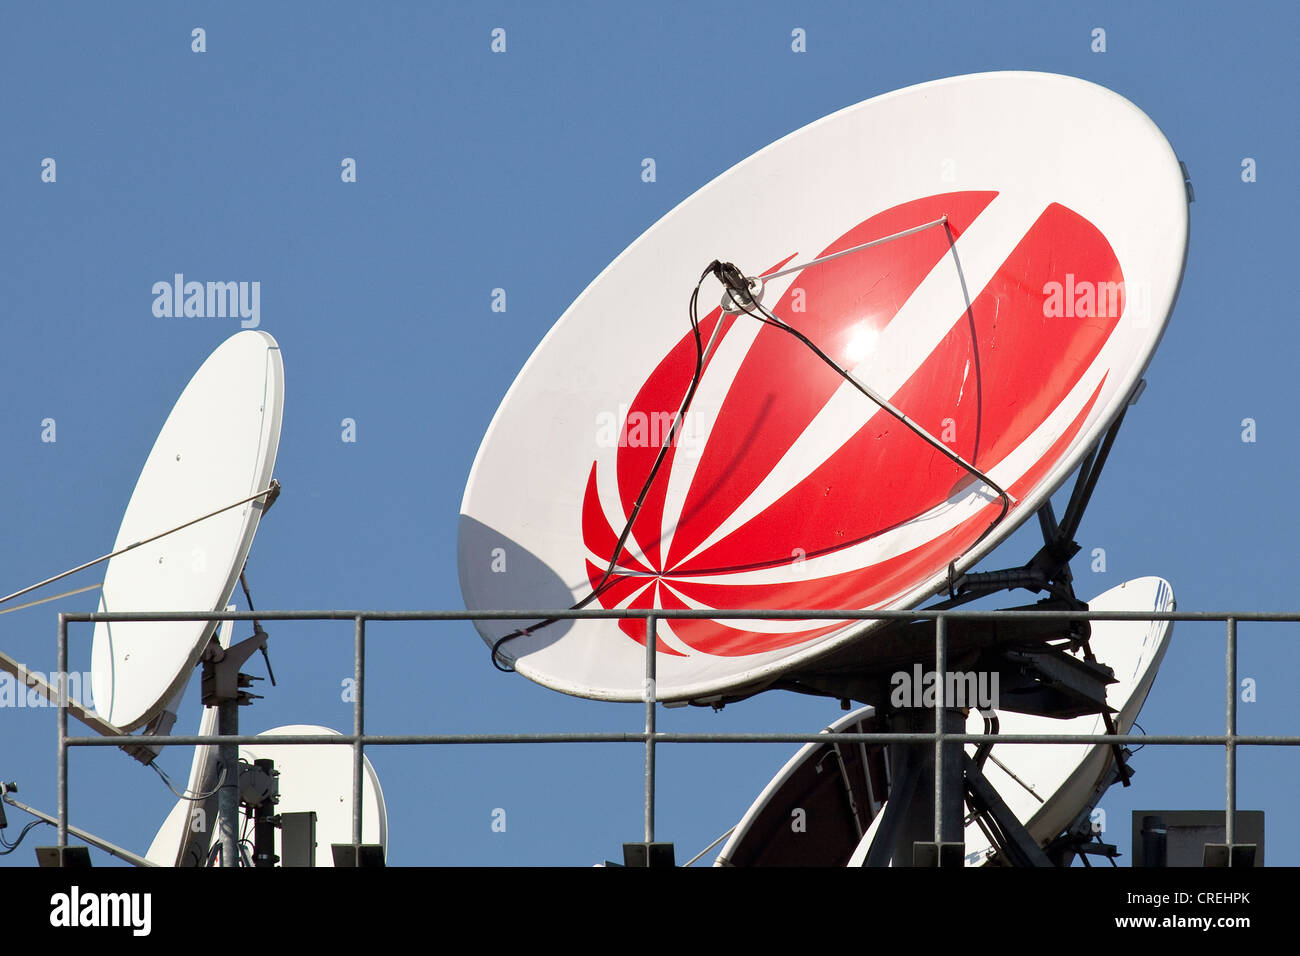 logo of the sat1 tv station on a satellite dish on the